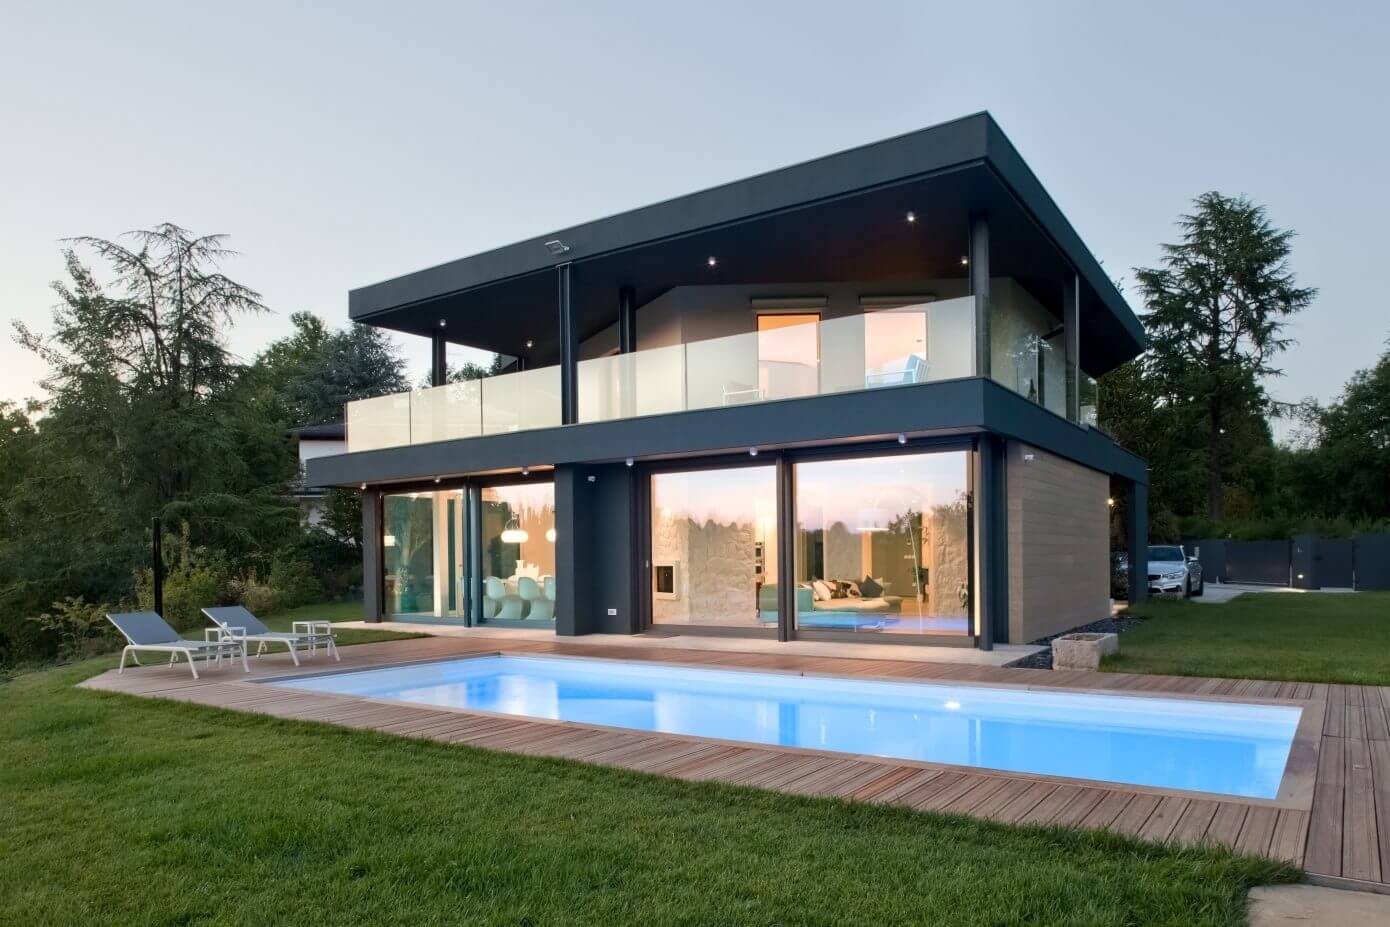 Villa in udine by iarchitects homeadore for Casa moderna udine